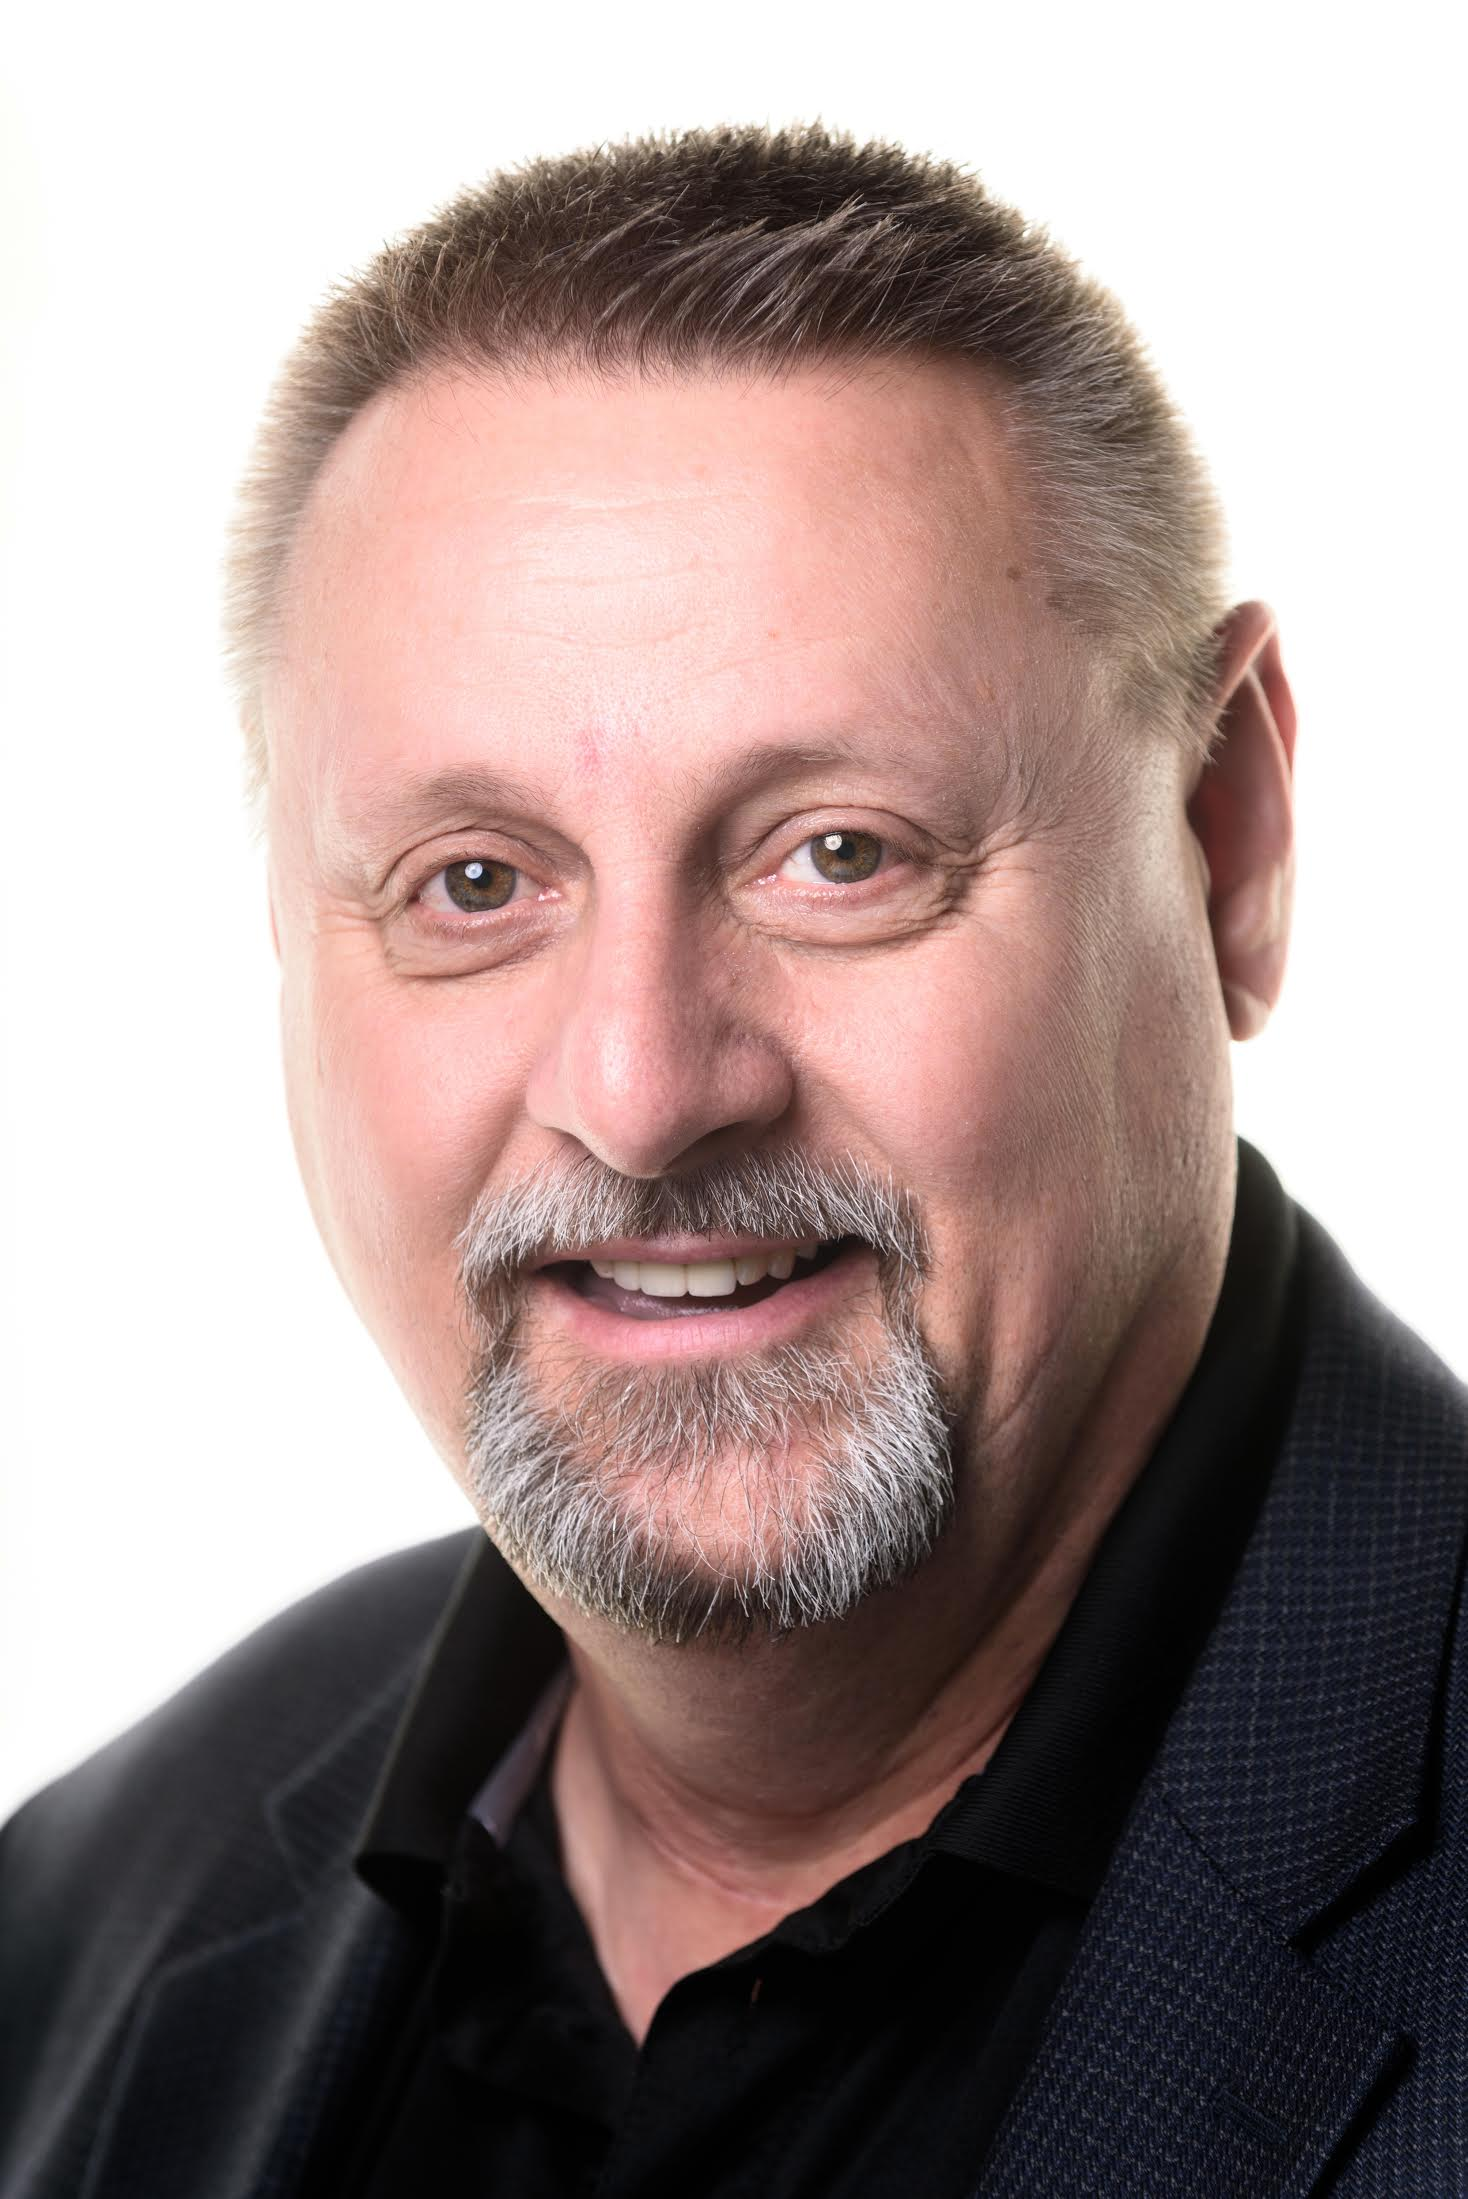 Meet Jim Hamilton - Jim is a featured speaker, professional coach,consultant, and workshop facilitator based in Alaska.